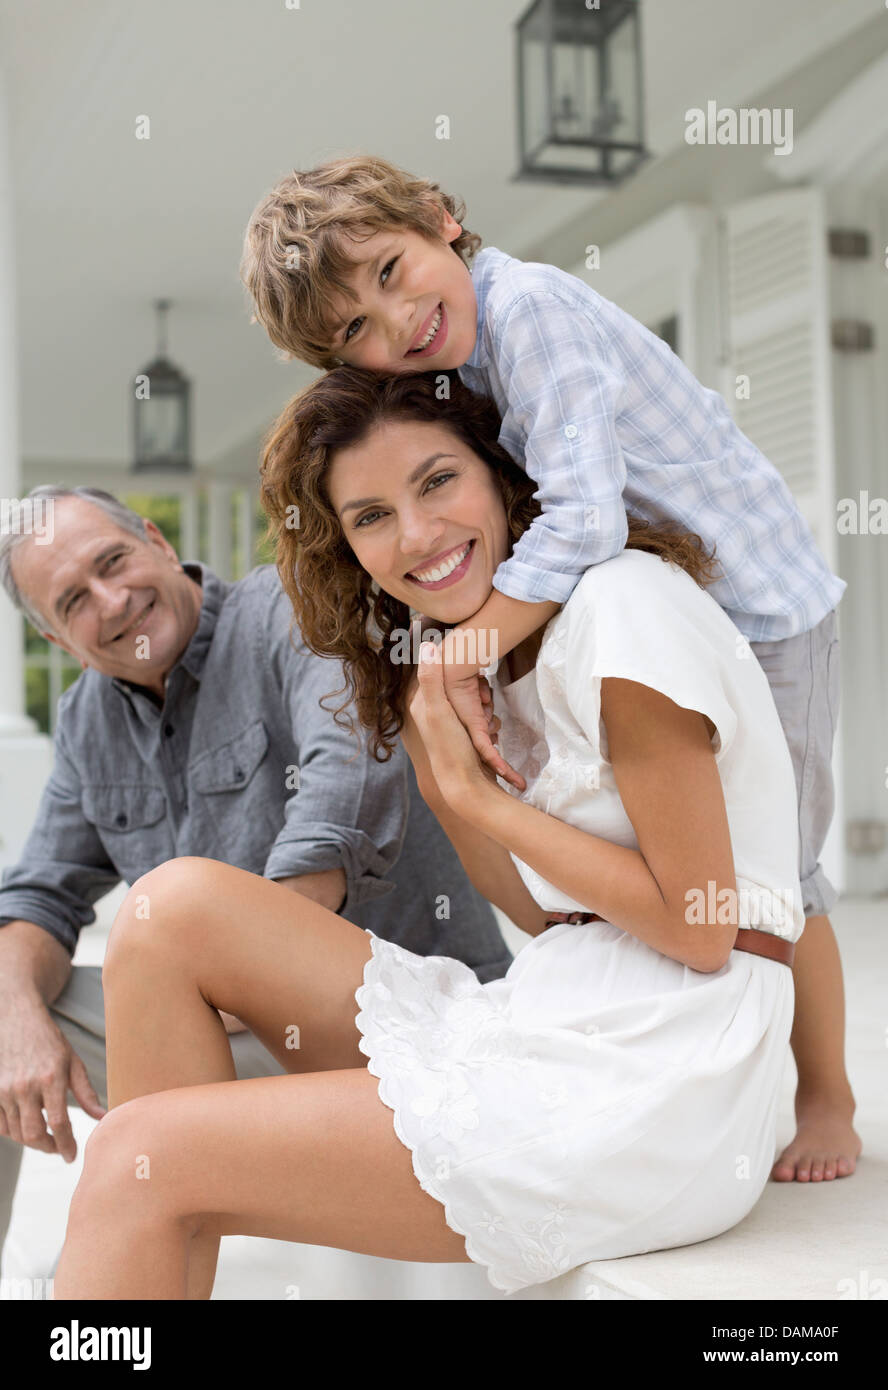 Mother and son smiling on porch - Stock Image